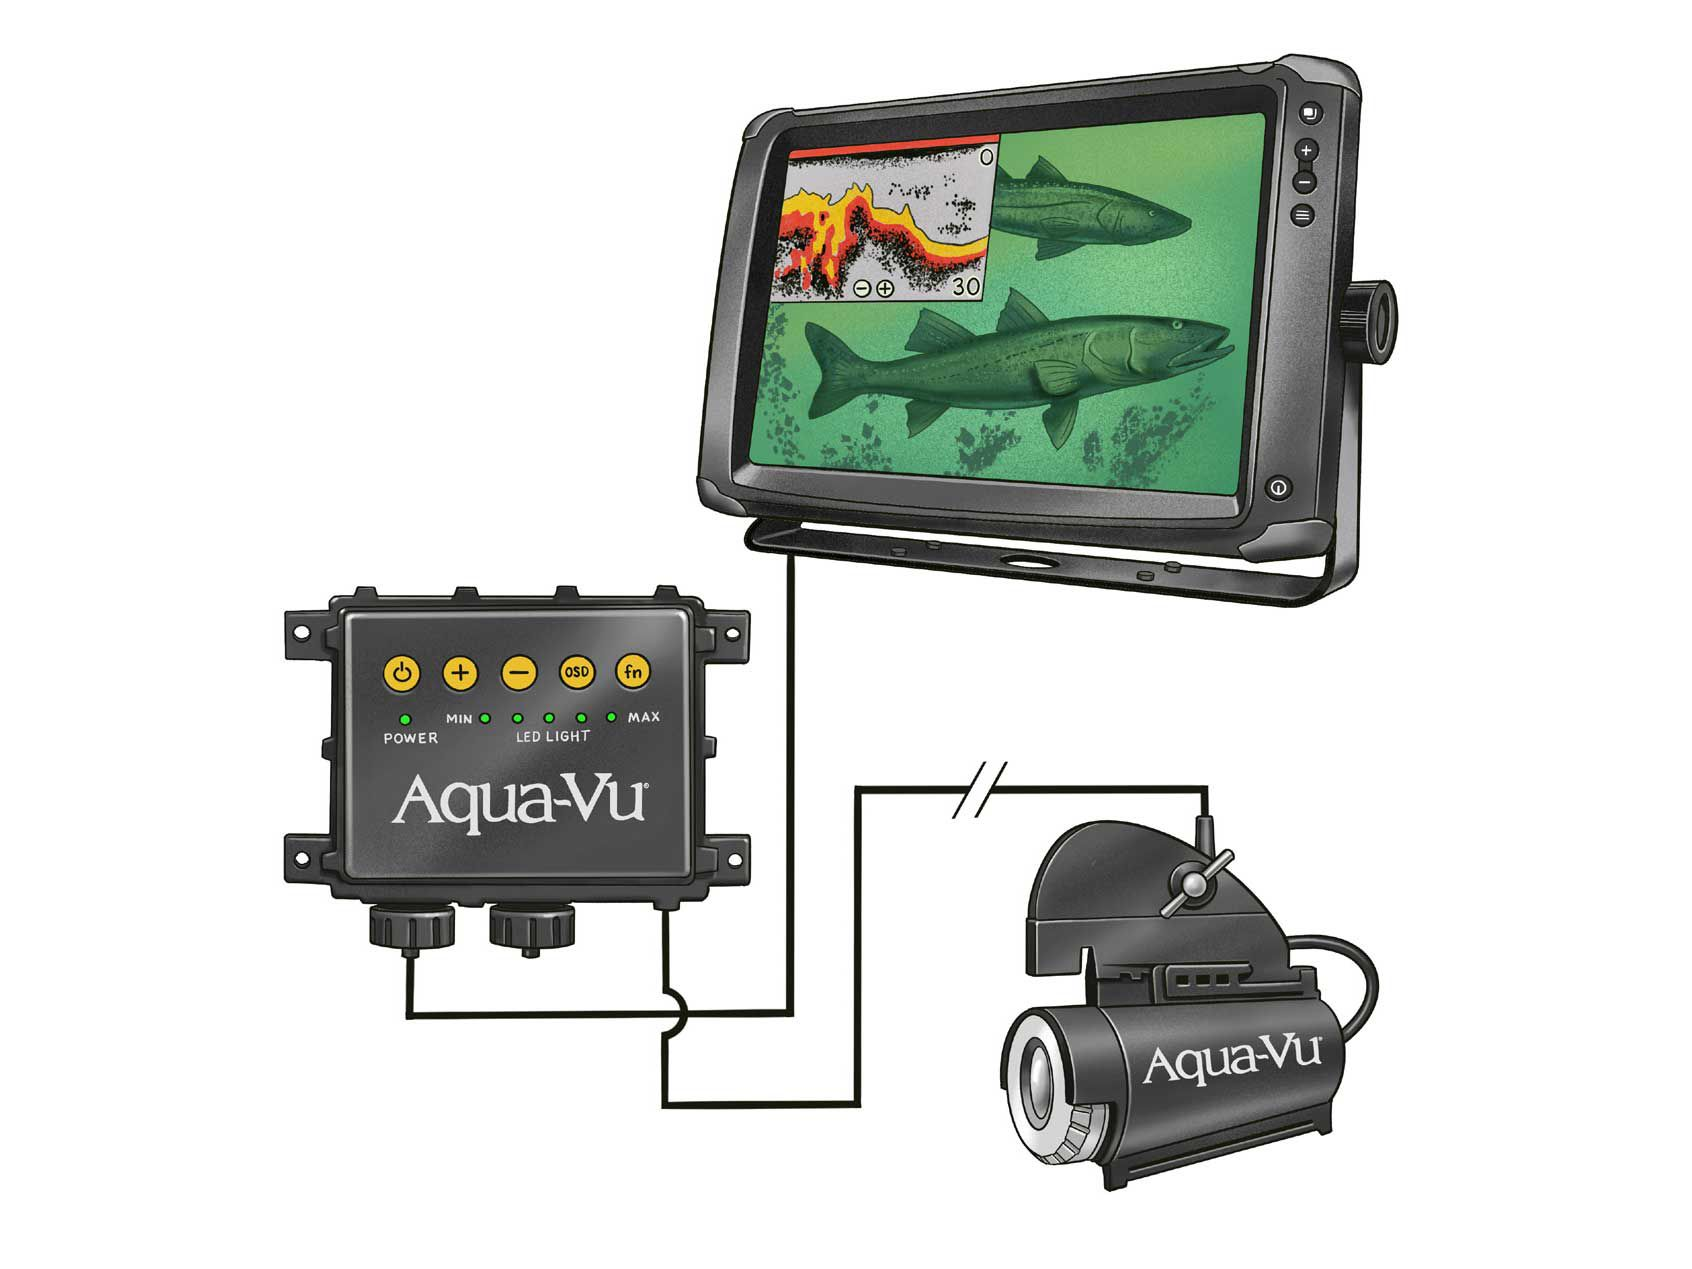 The Multi-Vu Pro system from Aqua-Vu lets anglers use a multifunction display to view underwater video plus the sonar and/or plotter simultaneously.